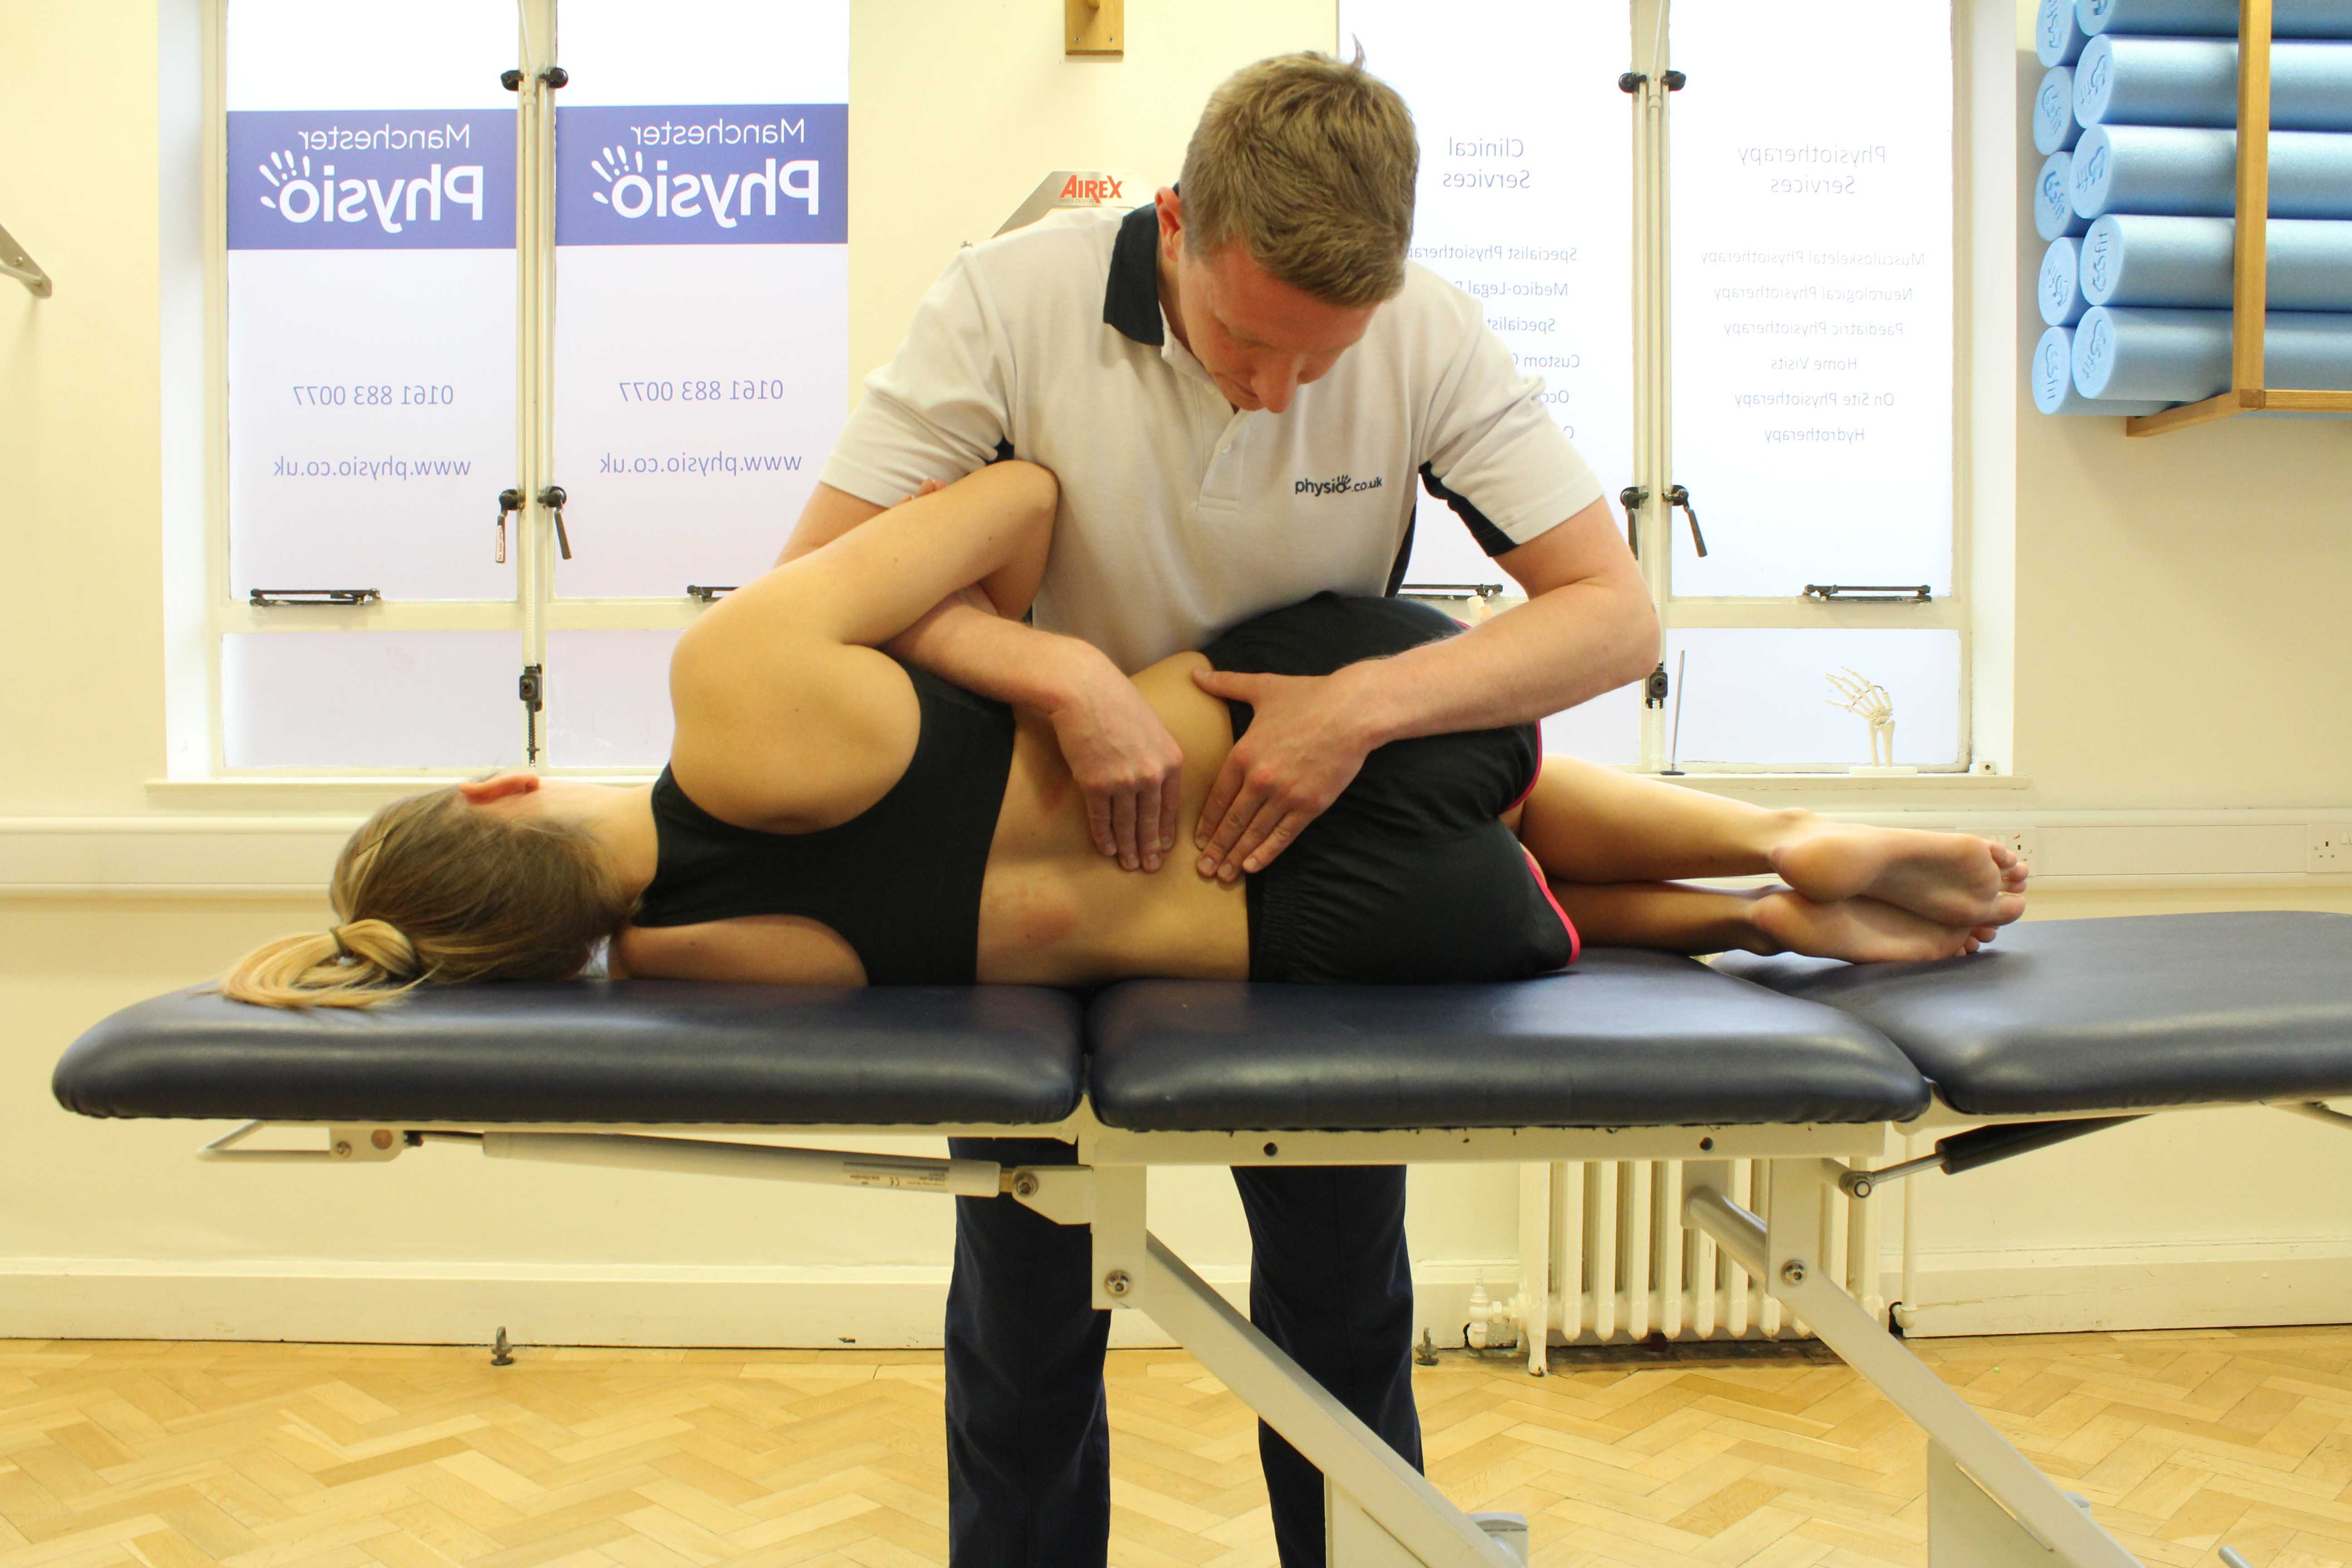 Mobilisations of the vertebrea in the lower back by experienced therapist